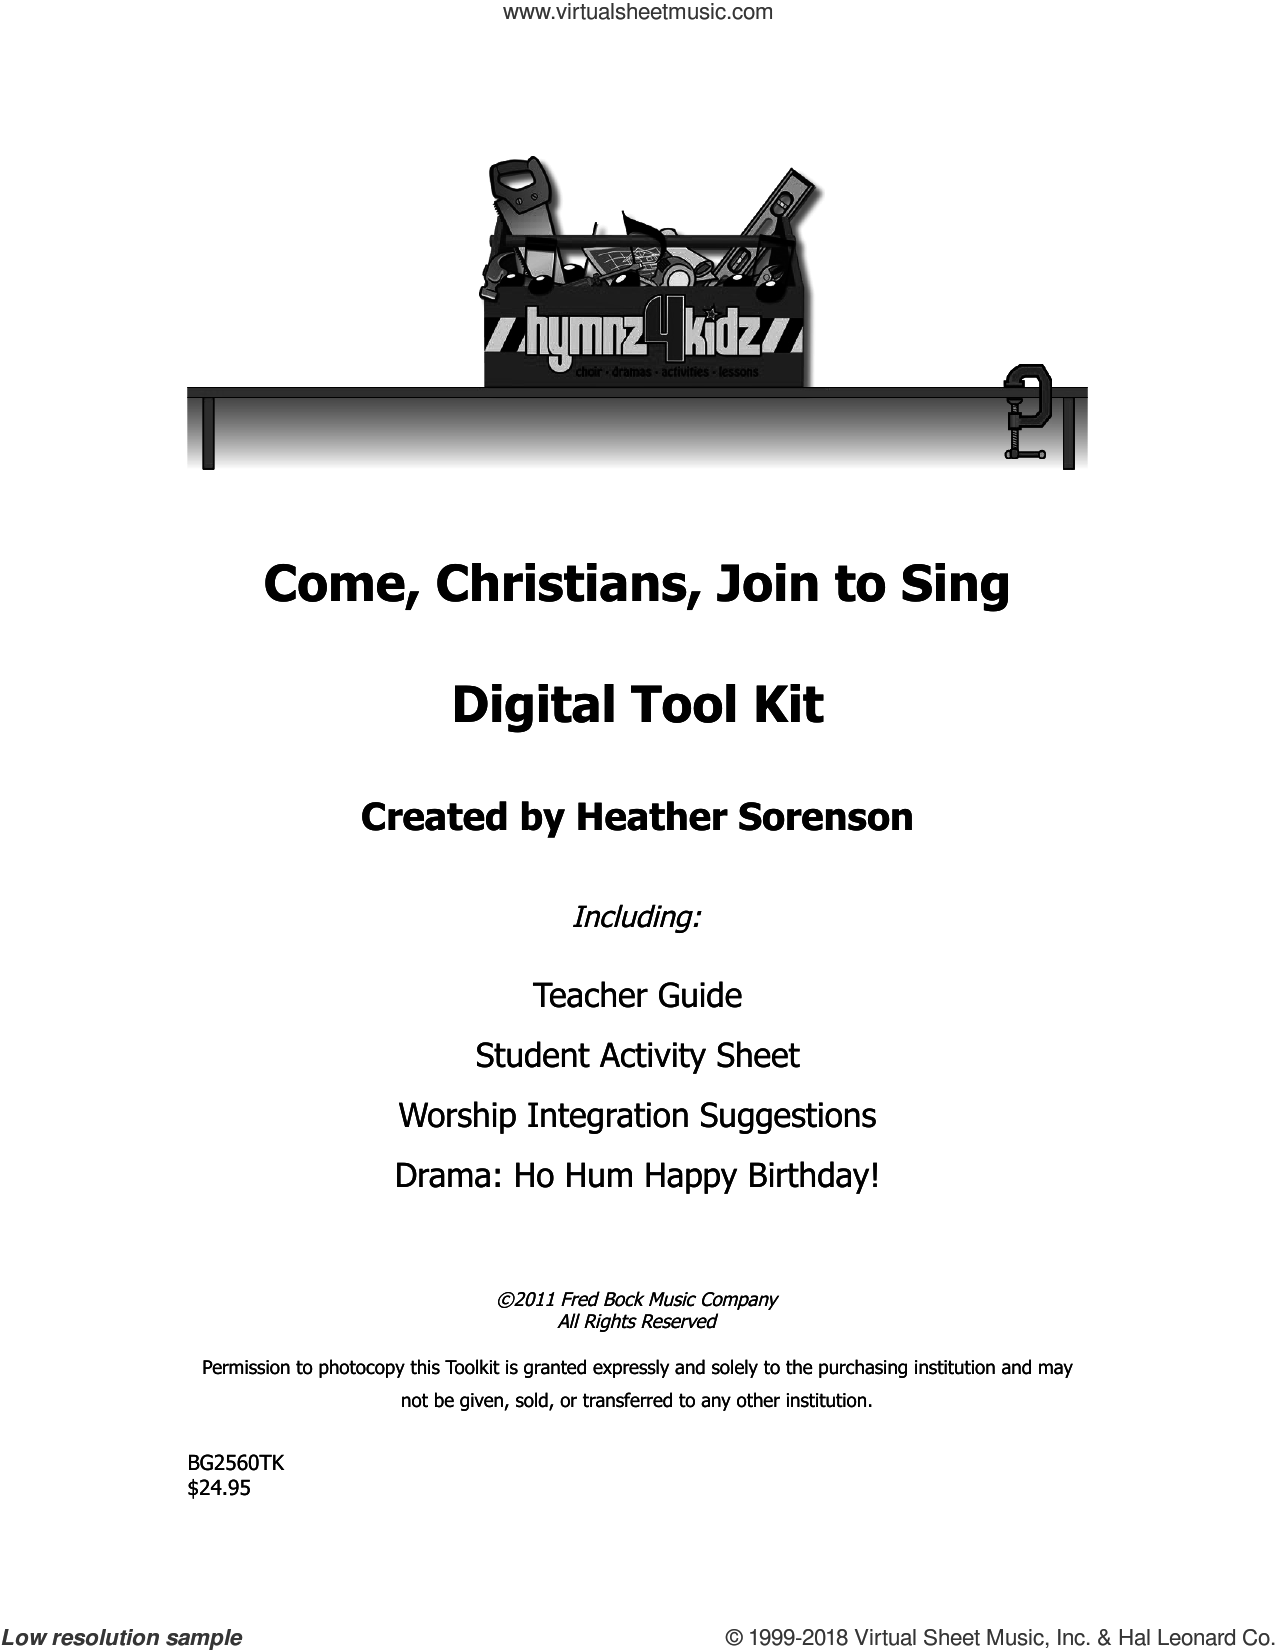 Come, Christians, Join To Sing sheet music for choir (choral tool kit) by Christian Henry Bateman and Heather Sorenson, intermediate